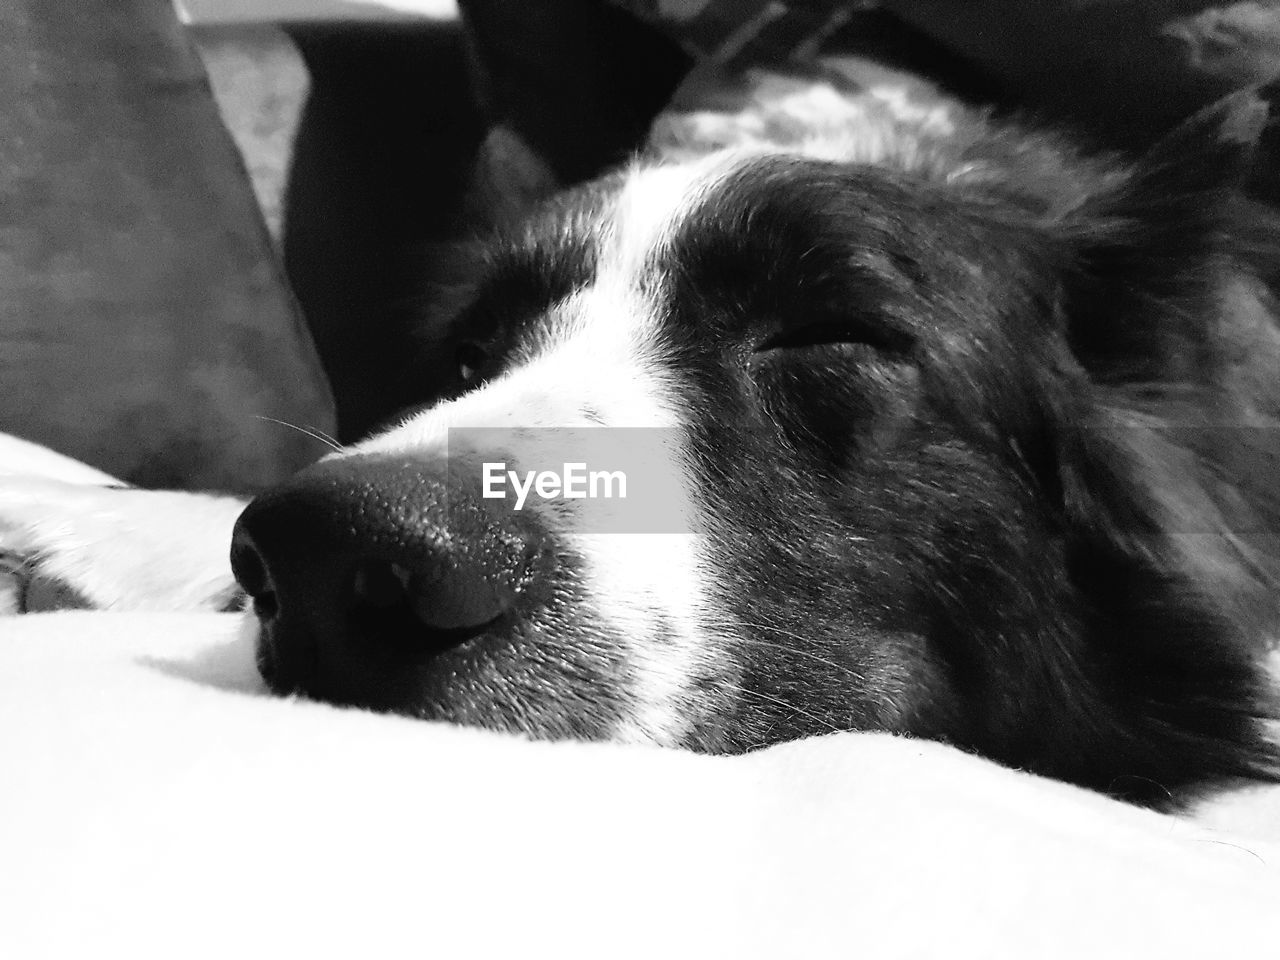 dog, pets, domestic animals, one animal, animal themes, mammal, animal head, close-up, no people, indoors, relaxation, day, nature